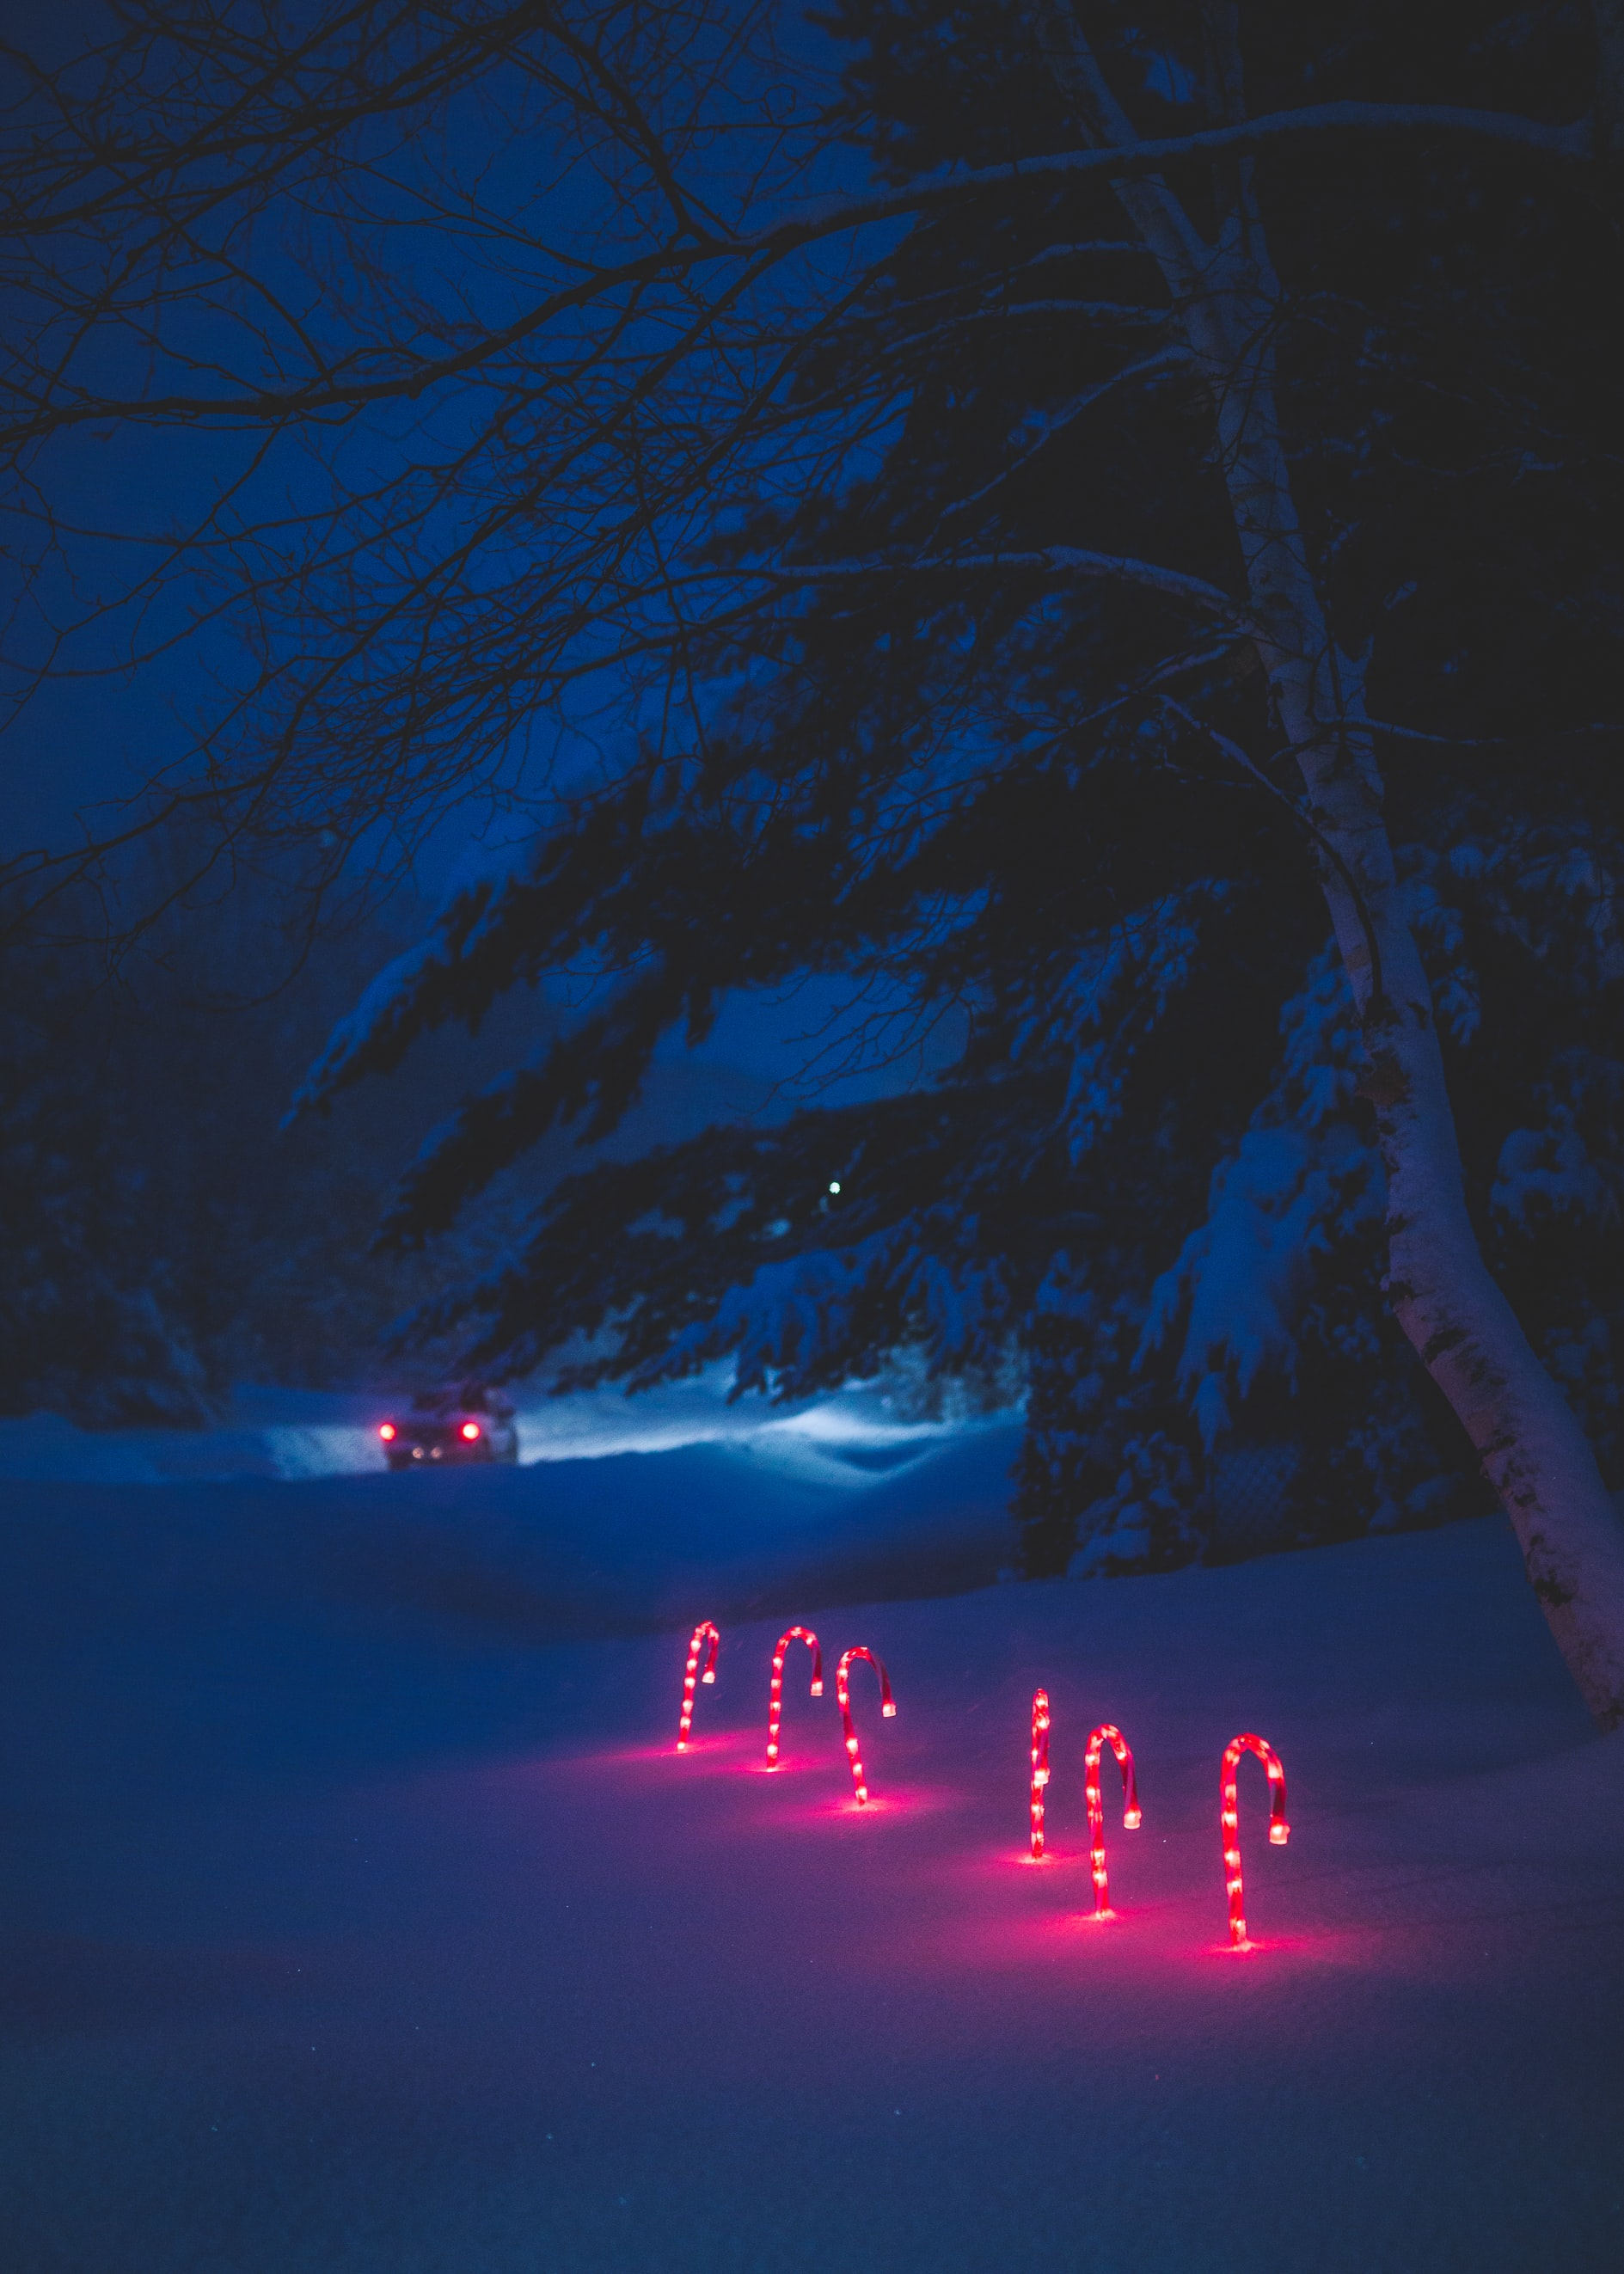 Car driving away with several red glowing candy canes sticked in the snow at night